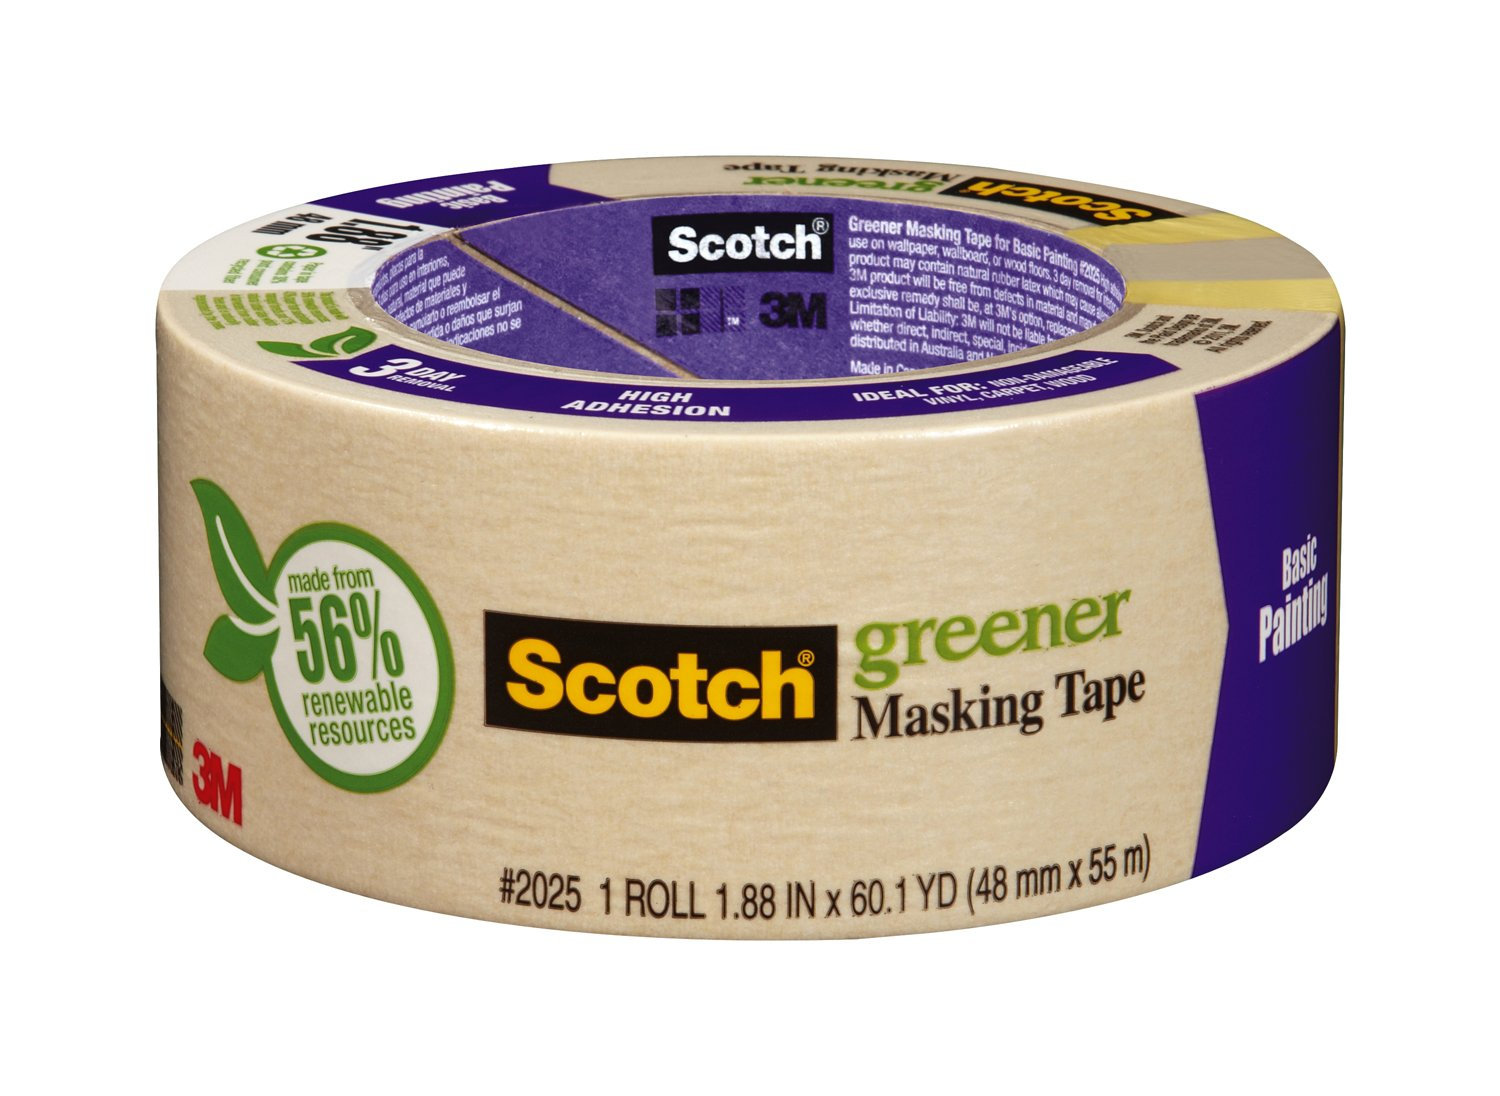 Scotch Masking Tape for Basic Painting, 1.88-Inch by 60.1-Yard